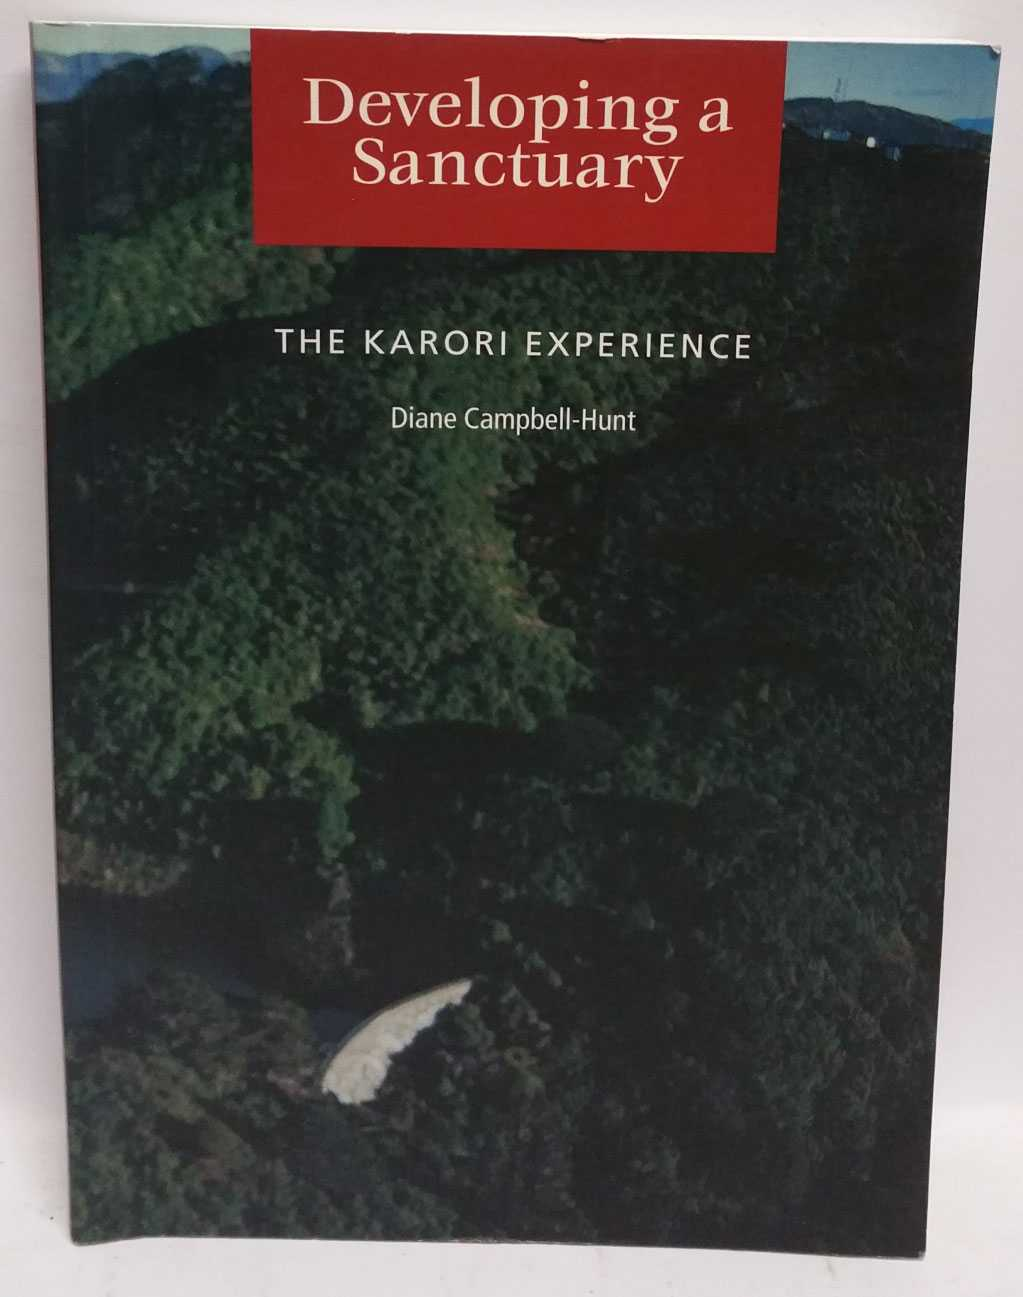 Developing a Sanctuary: The Karori Experience, Diane Campbell-Hunt